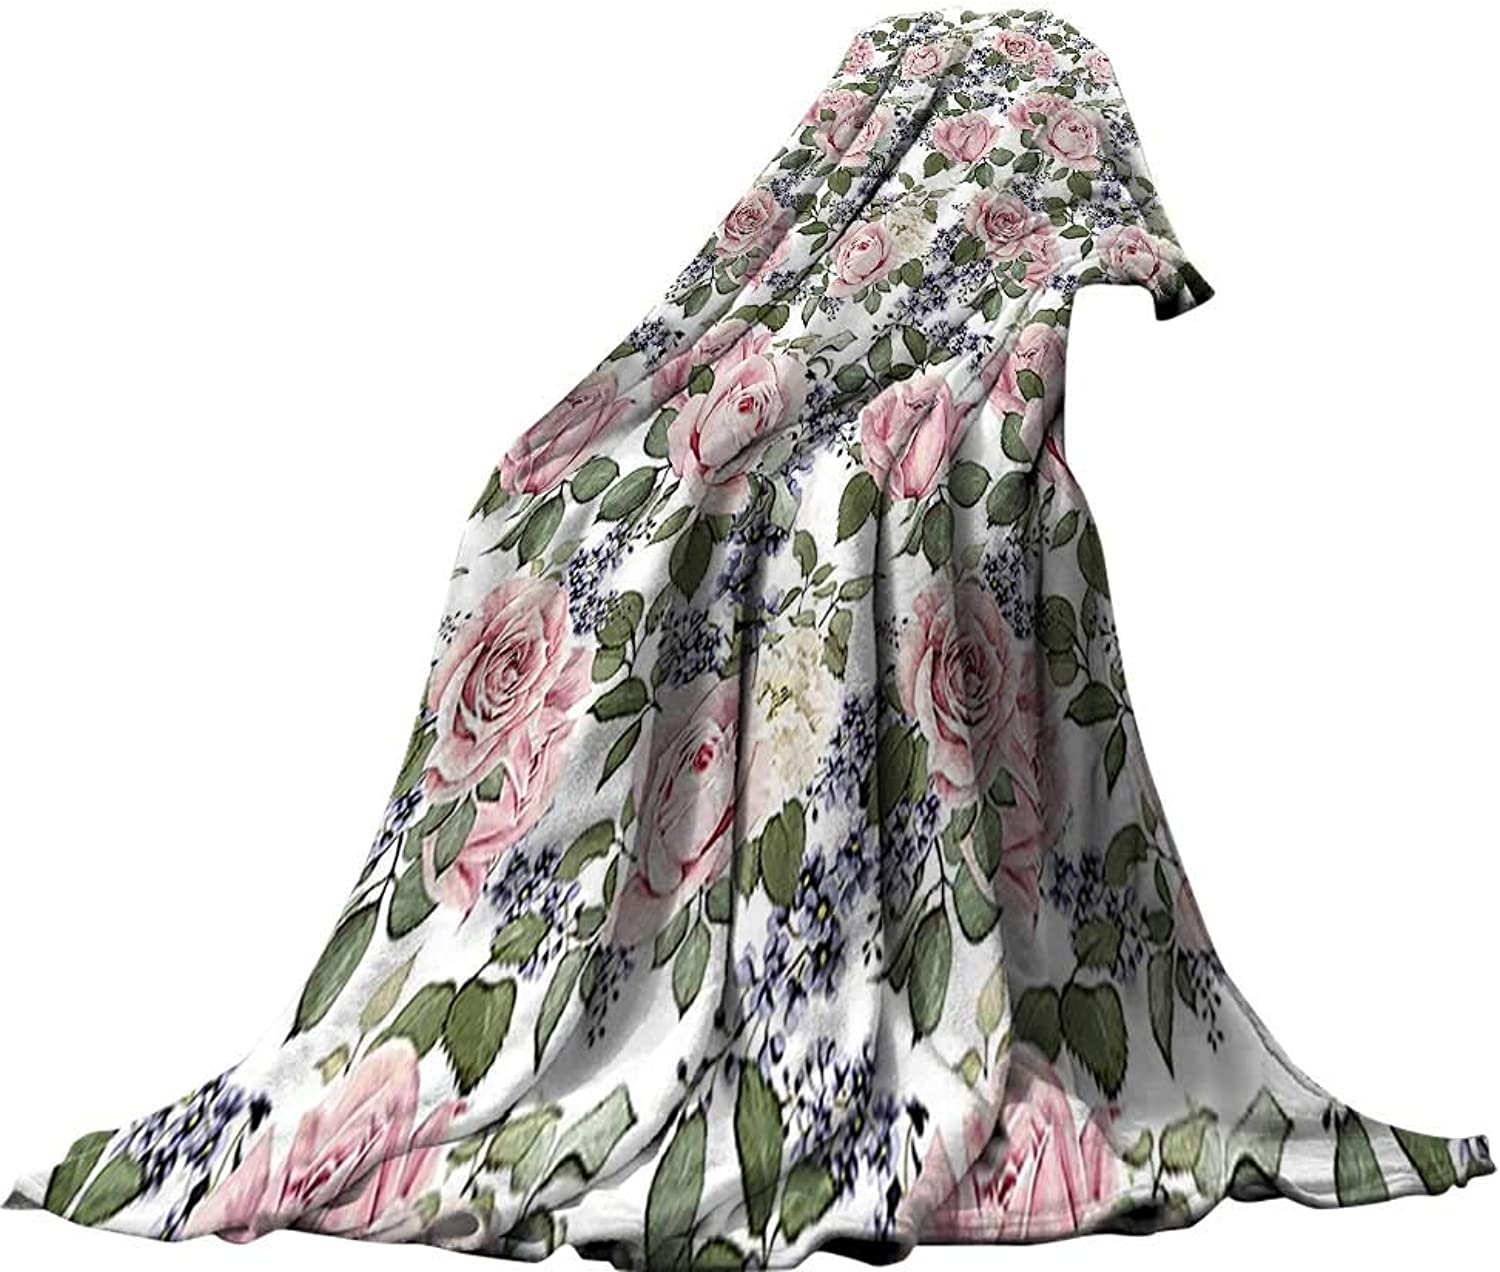 QINYANHome Weave Pattern Extra Long Blanket (90 x70 ) Summer Quilt Comforter pinks Decorations Floral Pattern with pinks Leaf Peony Plant Flower Arrangement Art Pink Green Purple.